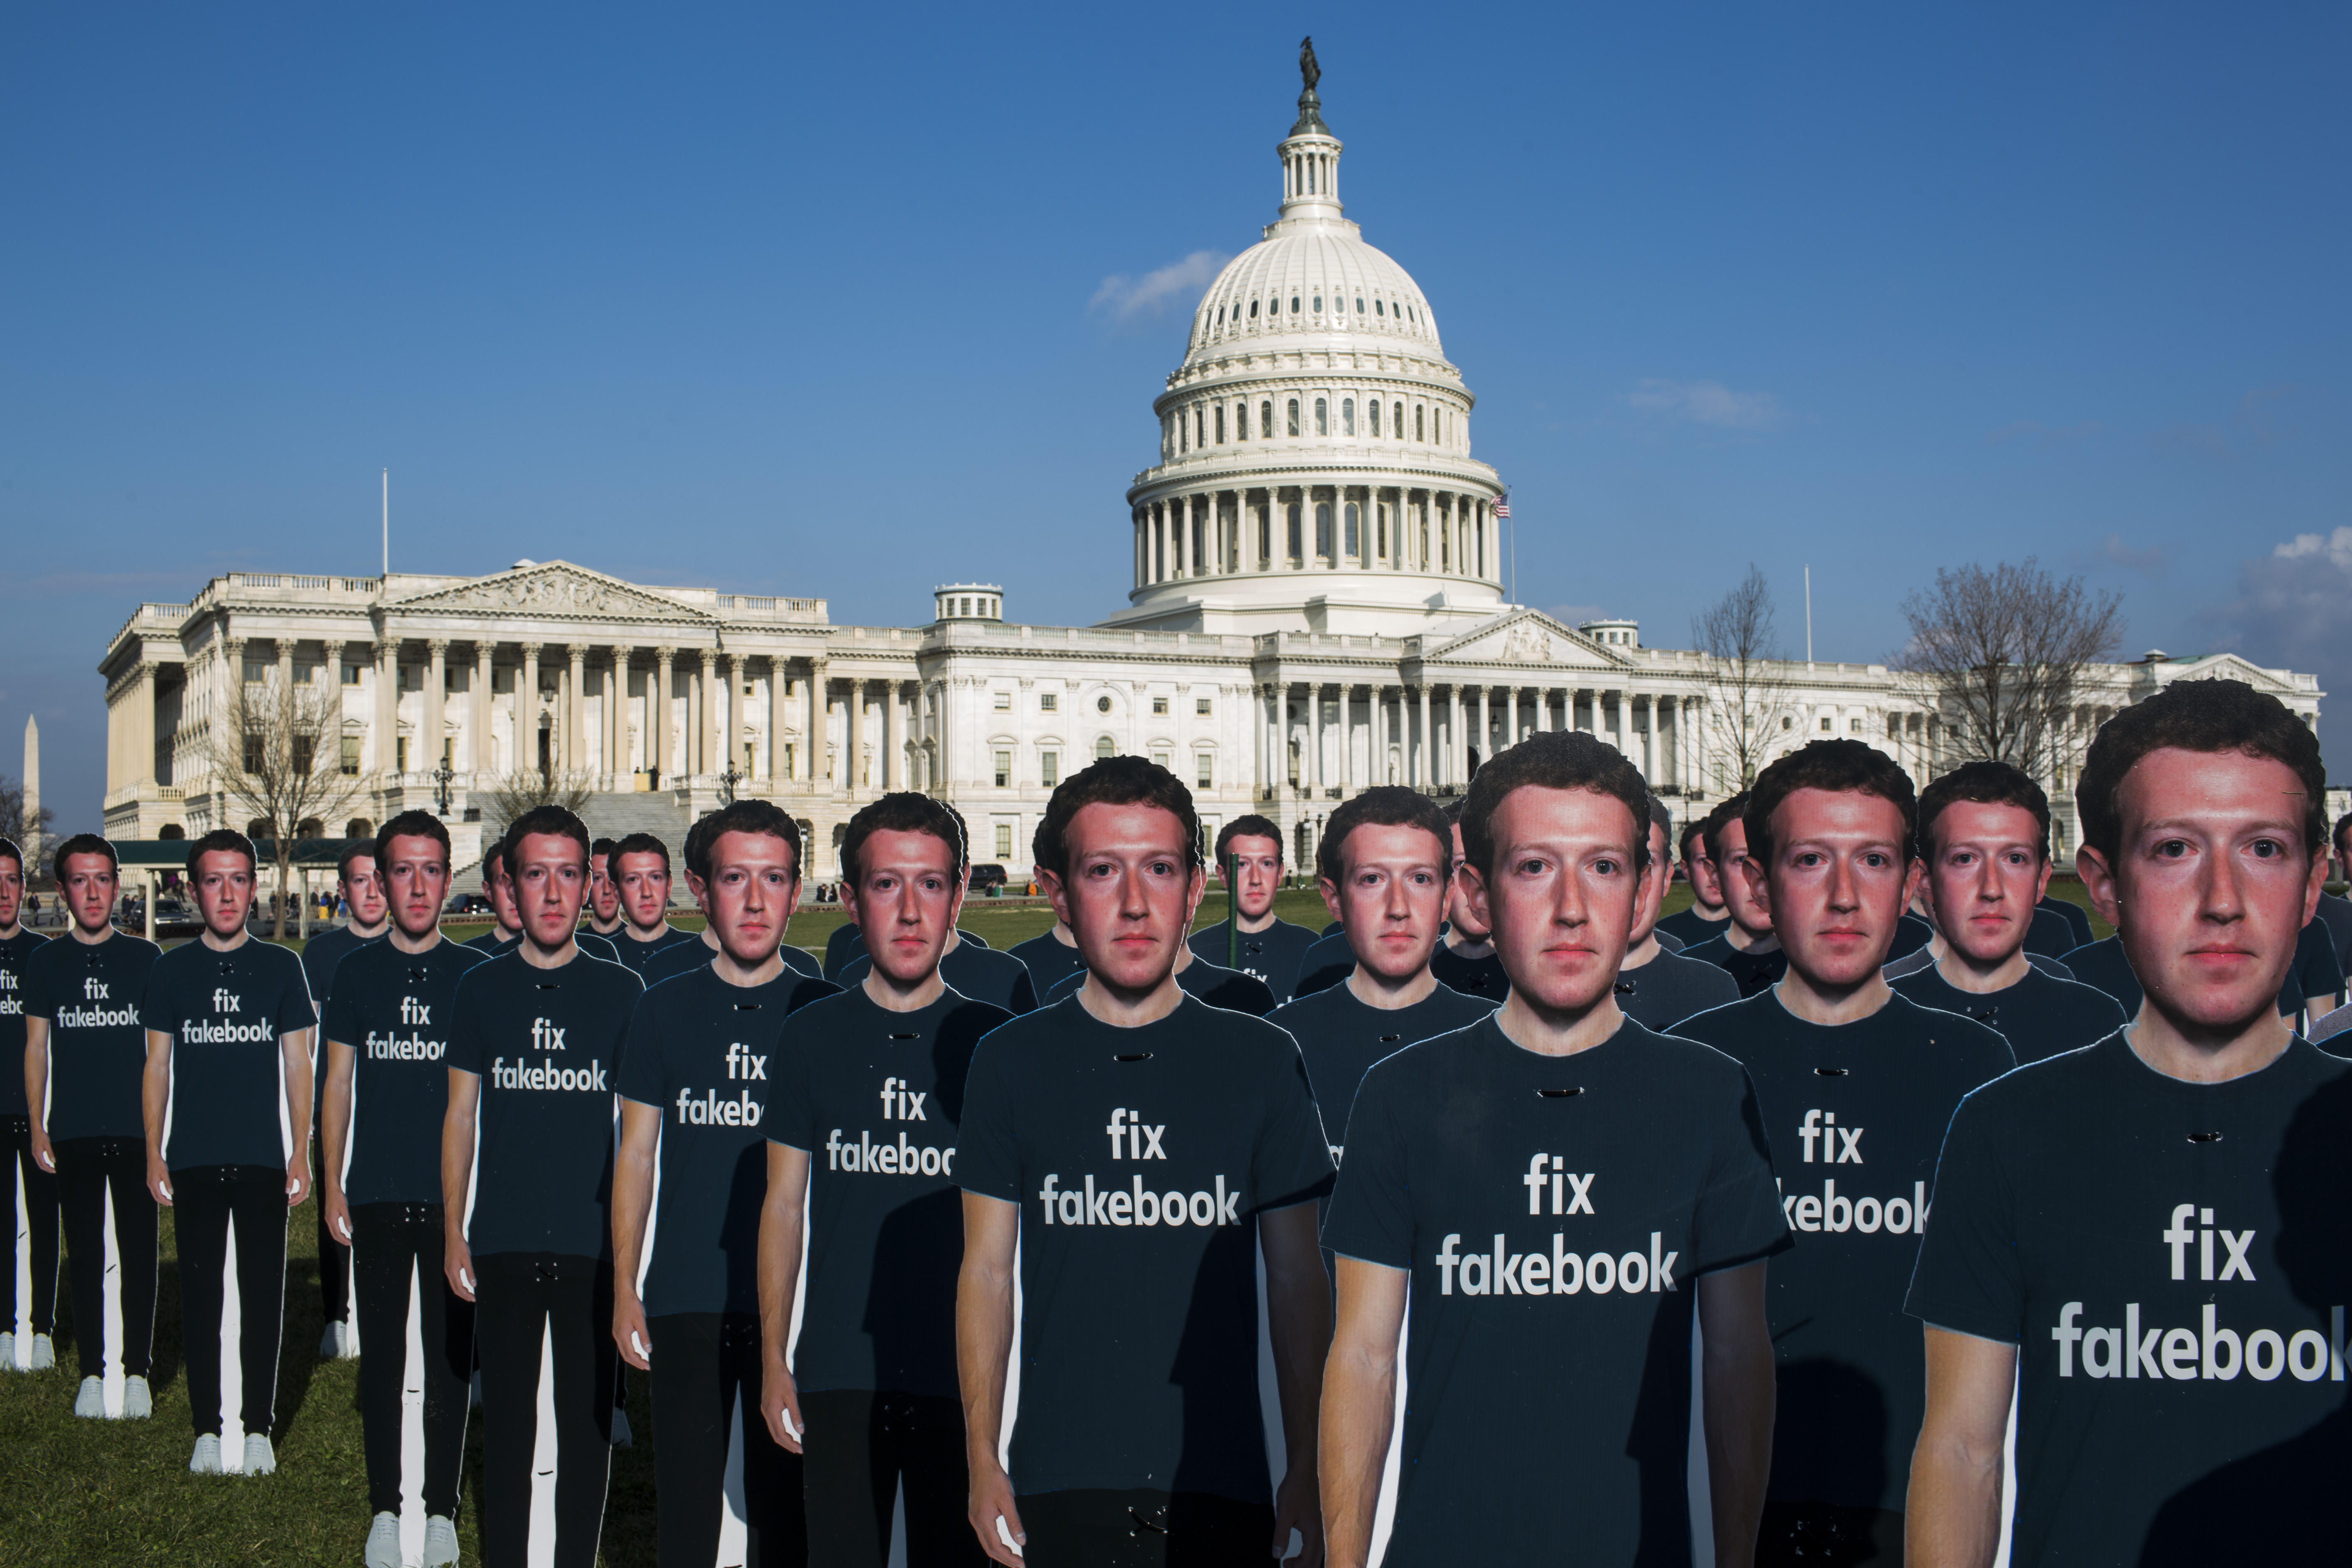 100 life-size cutouts of Facebook CEO Mark Zuckerberg on the Capitol Hill lawn.